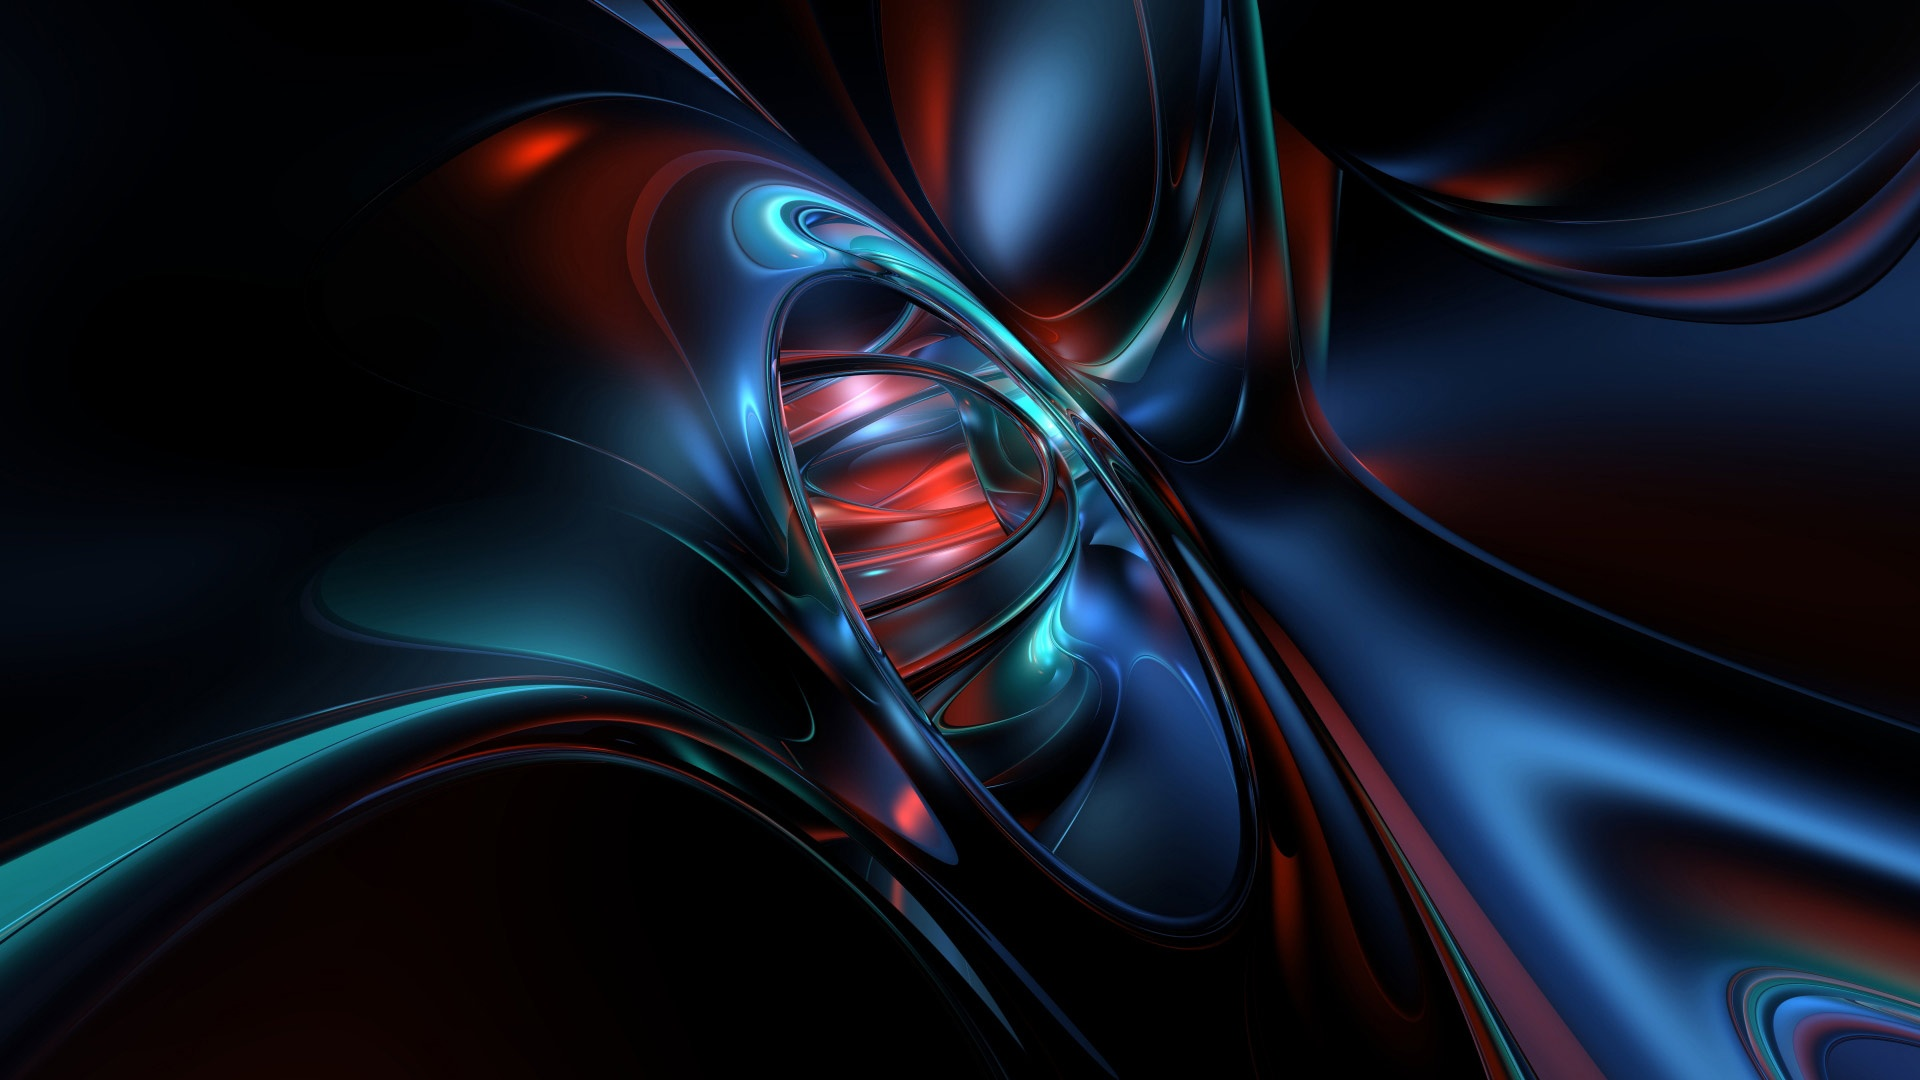 abstract wallpapers hd dark 2d